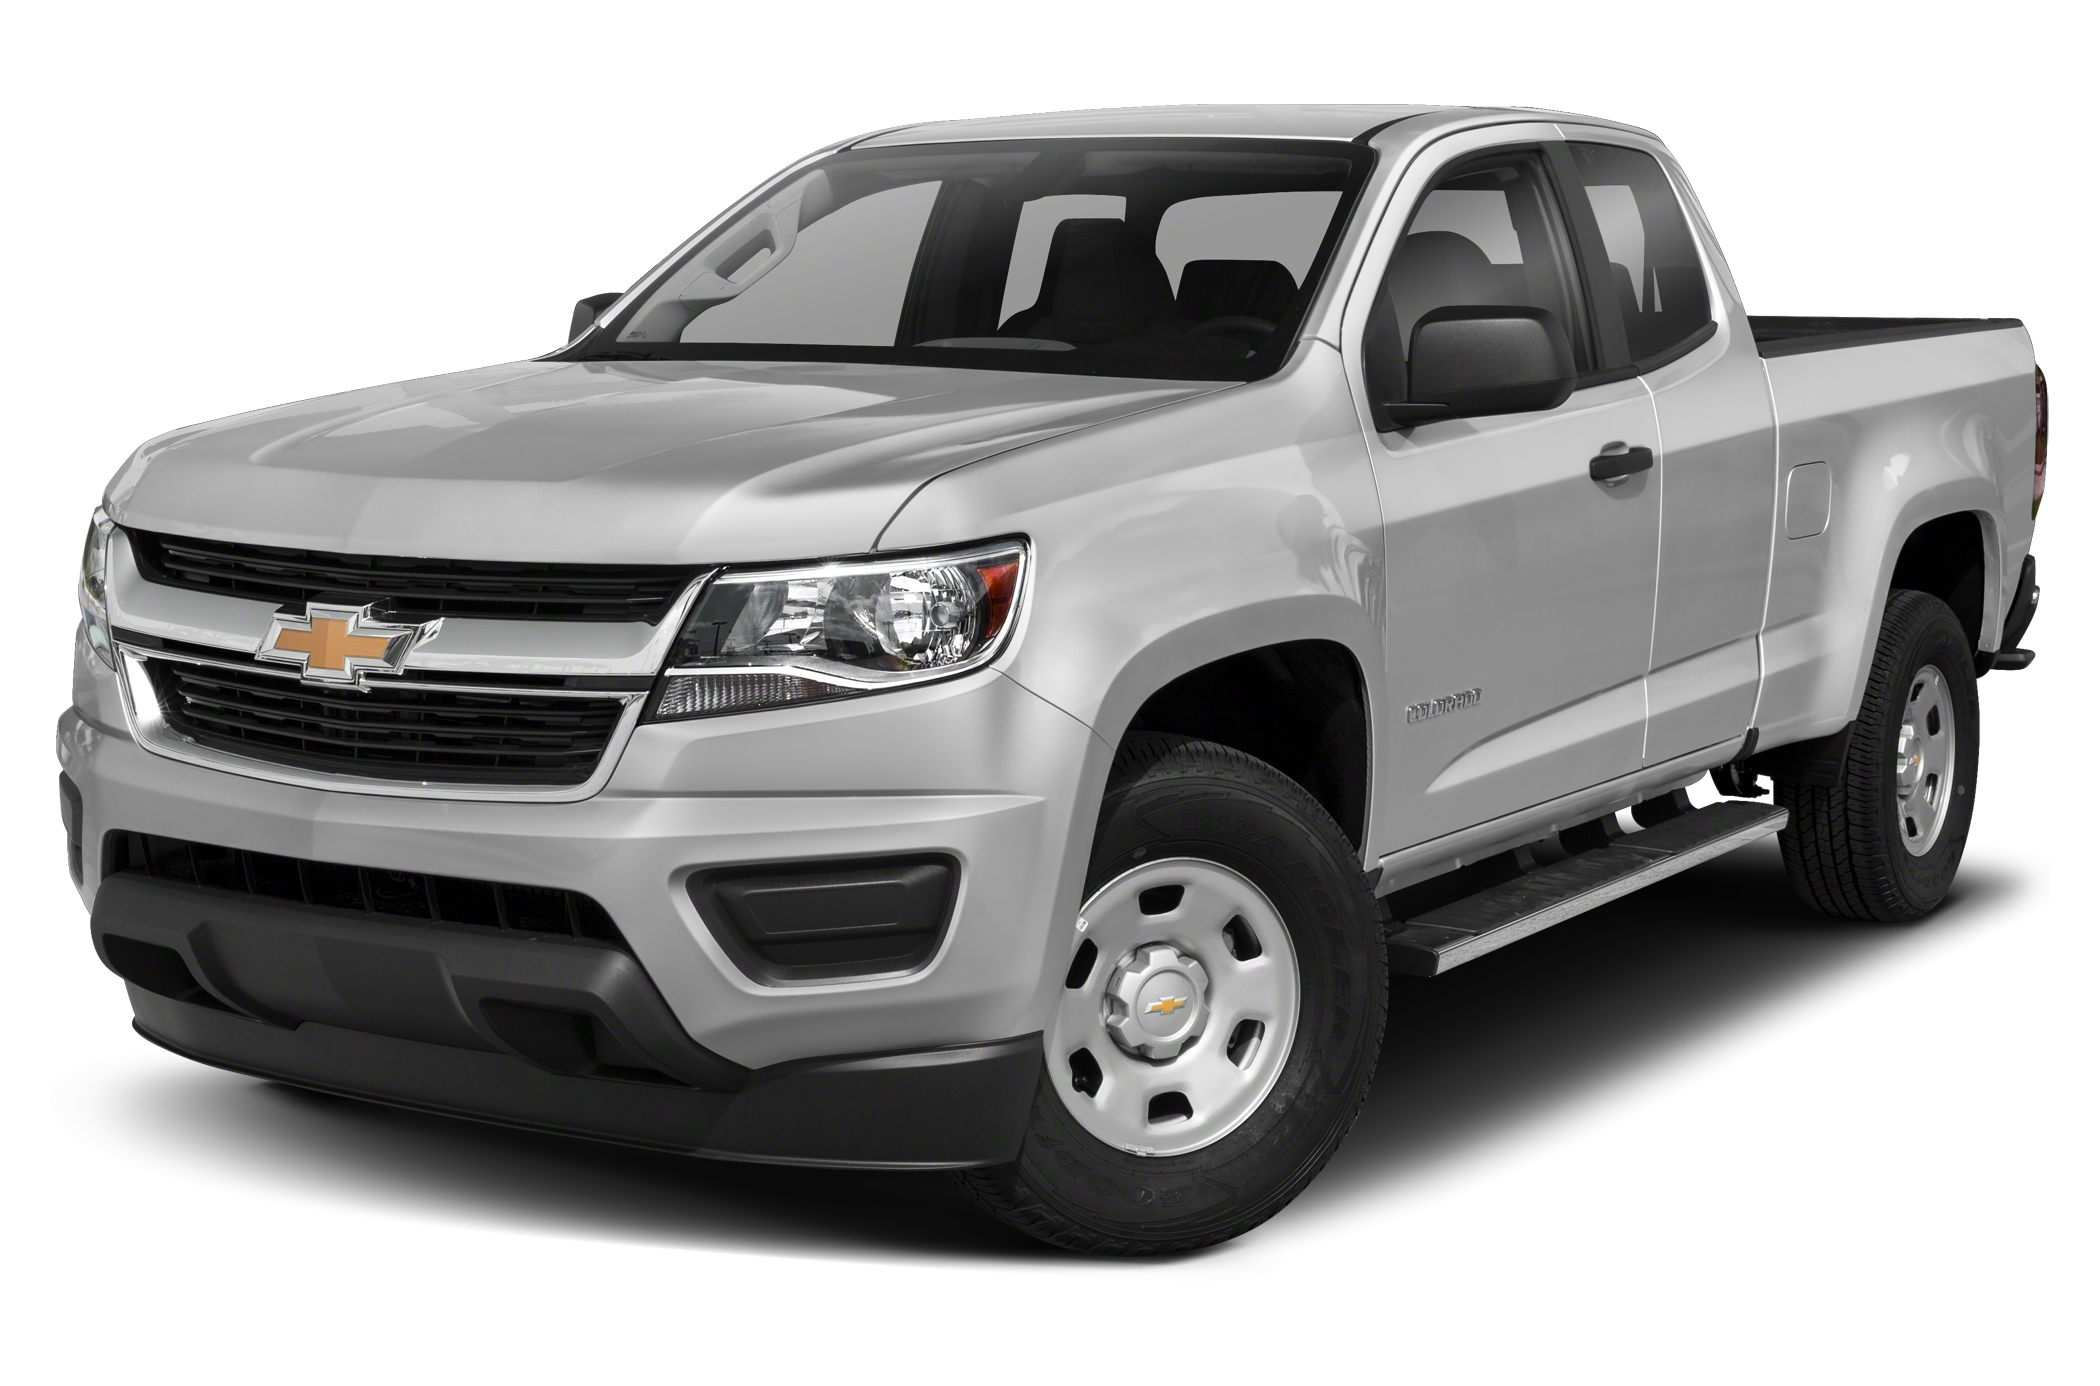 84 The 2020 Chevrolet Colorado Updates Photos by 2020 Chevrolet Colorado Updates